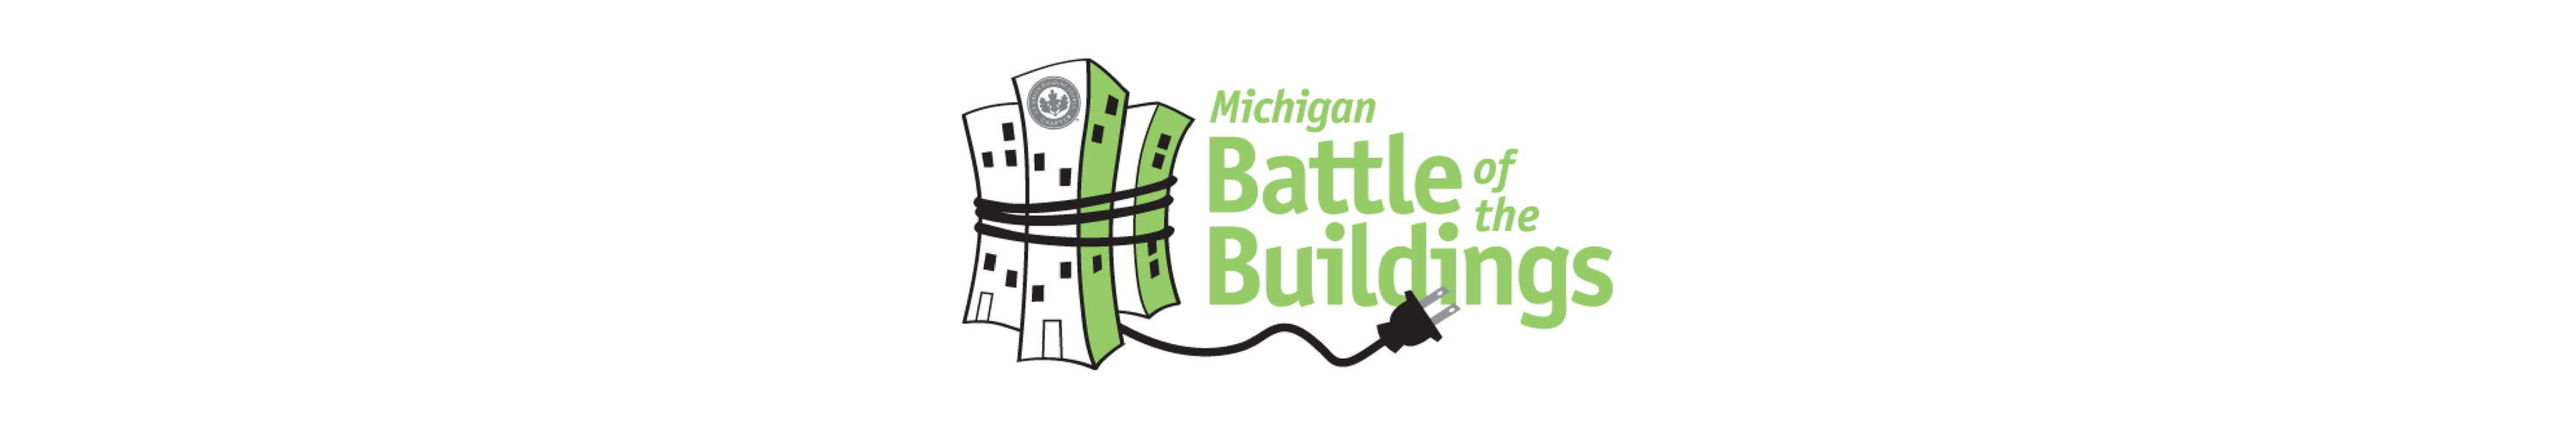 Michigan Battle of the Buildings